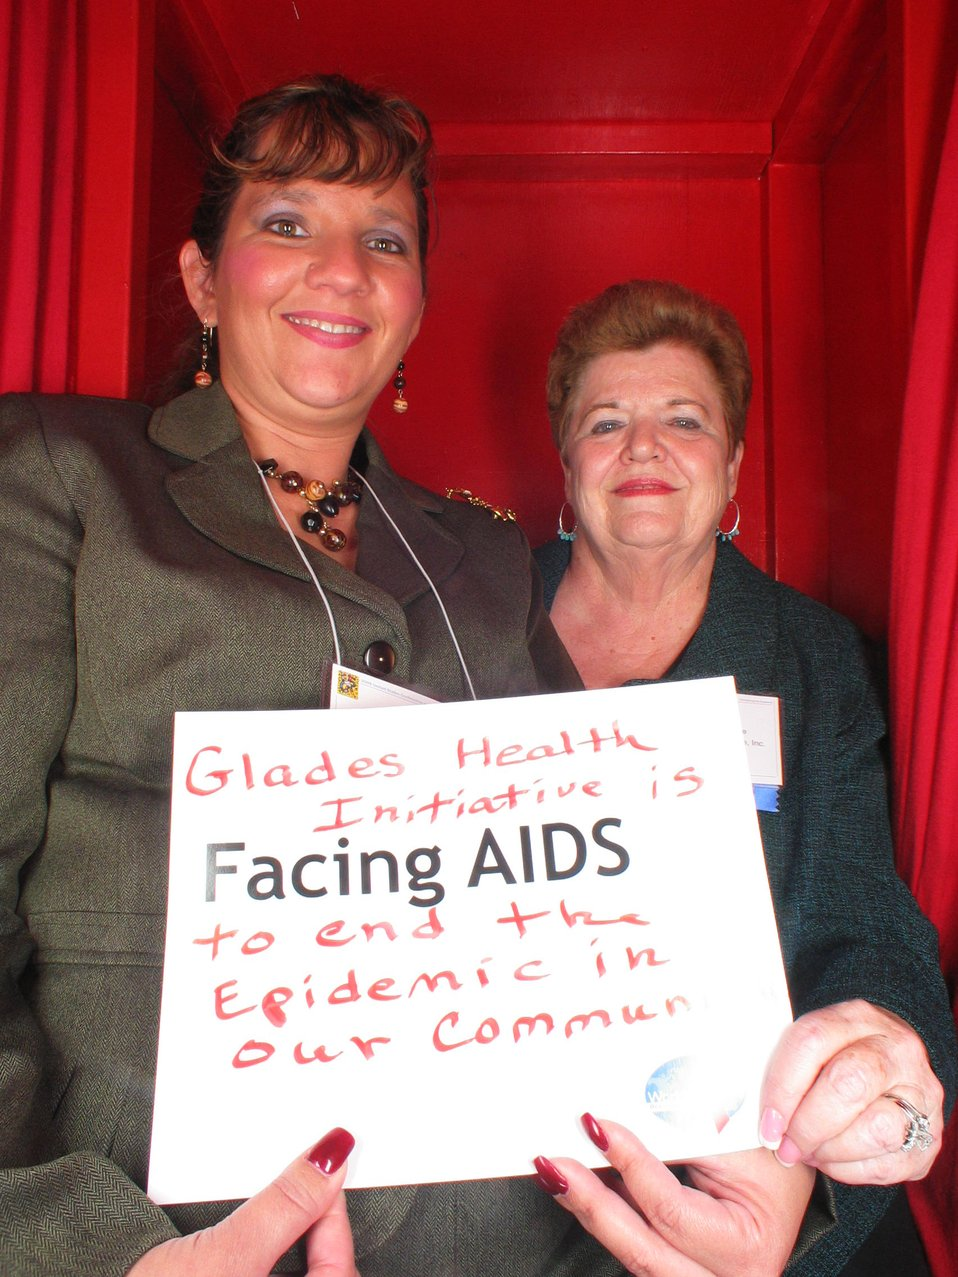 Facing AIDS to end the epidemic in our community.